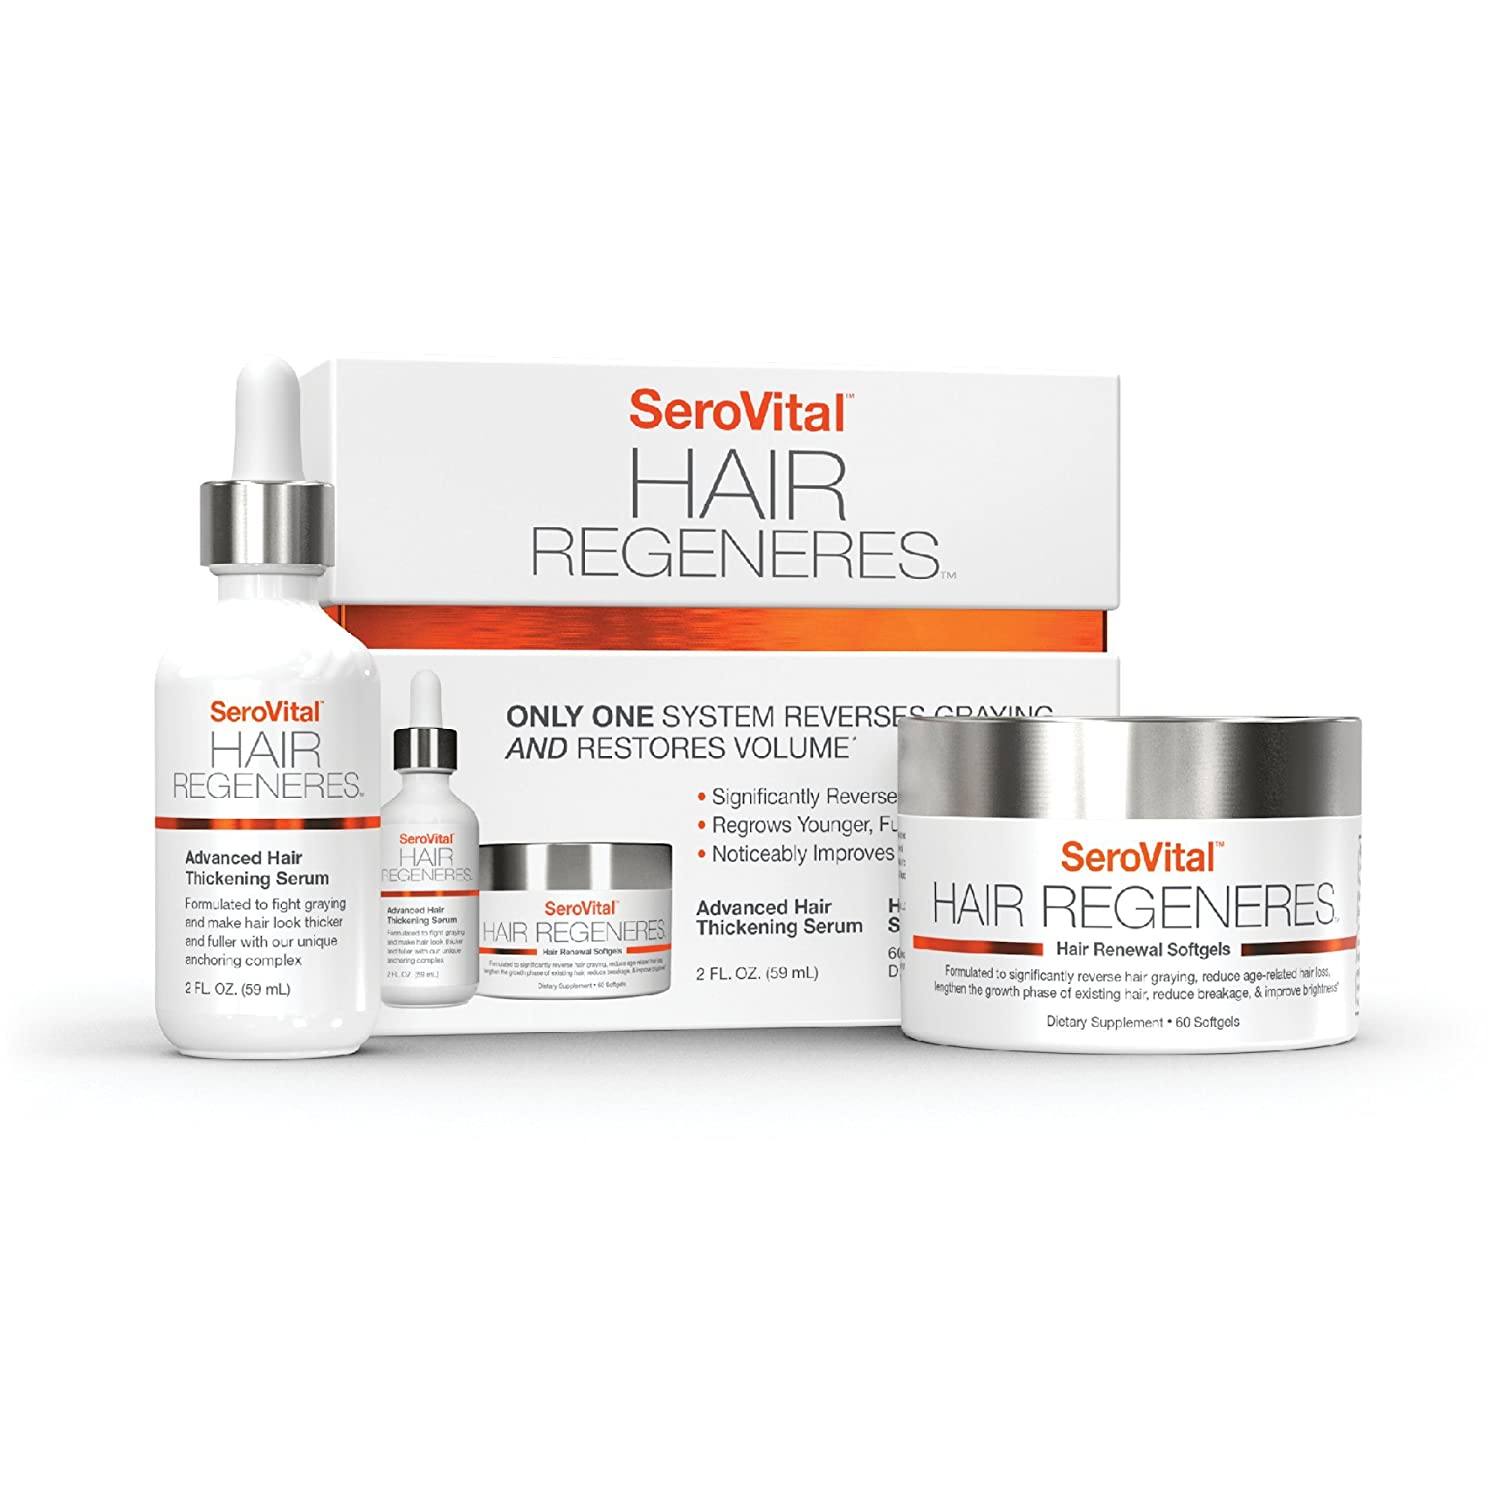 Serovital Hair Regeneres - Revolutionary System That Significantly Reverses Hair Graying, Restores Hair Volume, Revitalizes the Scalp, and Strengthens Hair San Medica